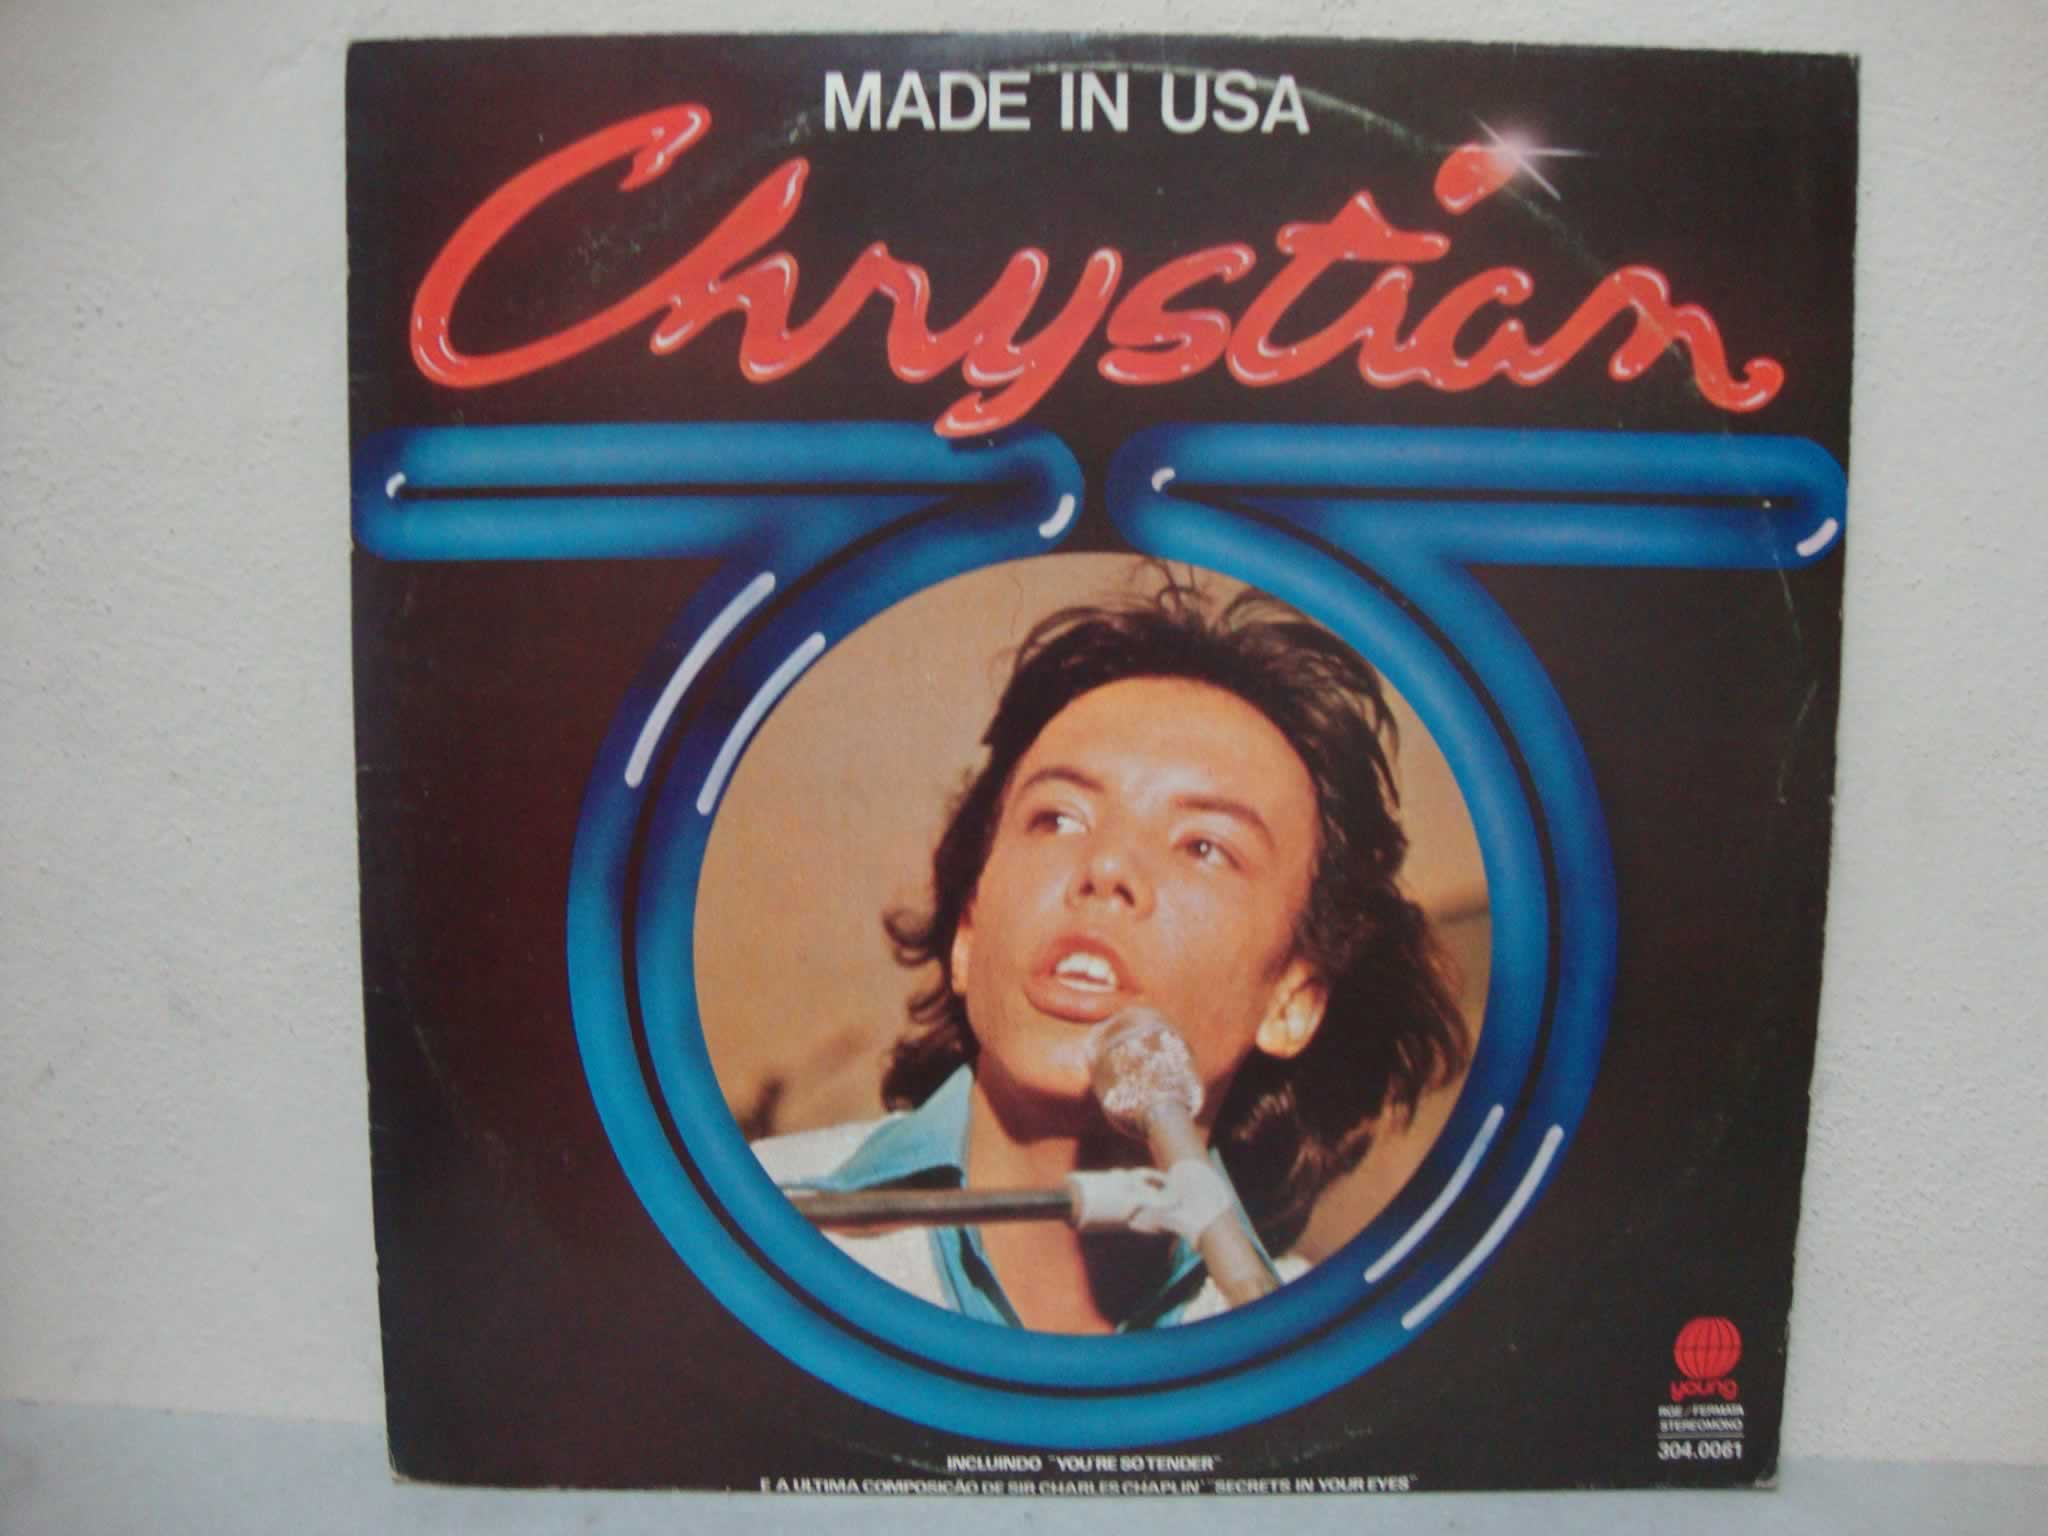 VINIL CHRYSTIAN - MADE IN USA